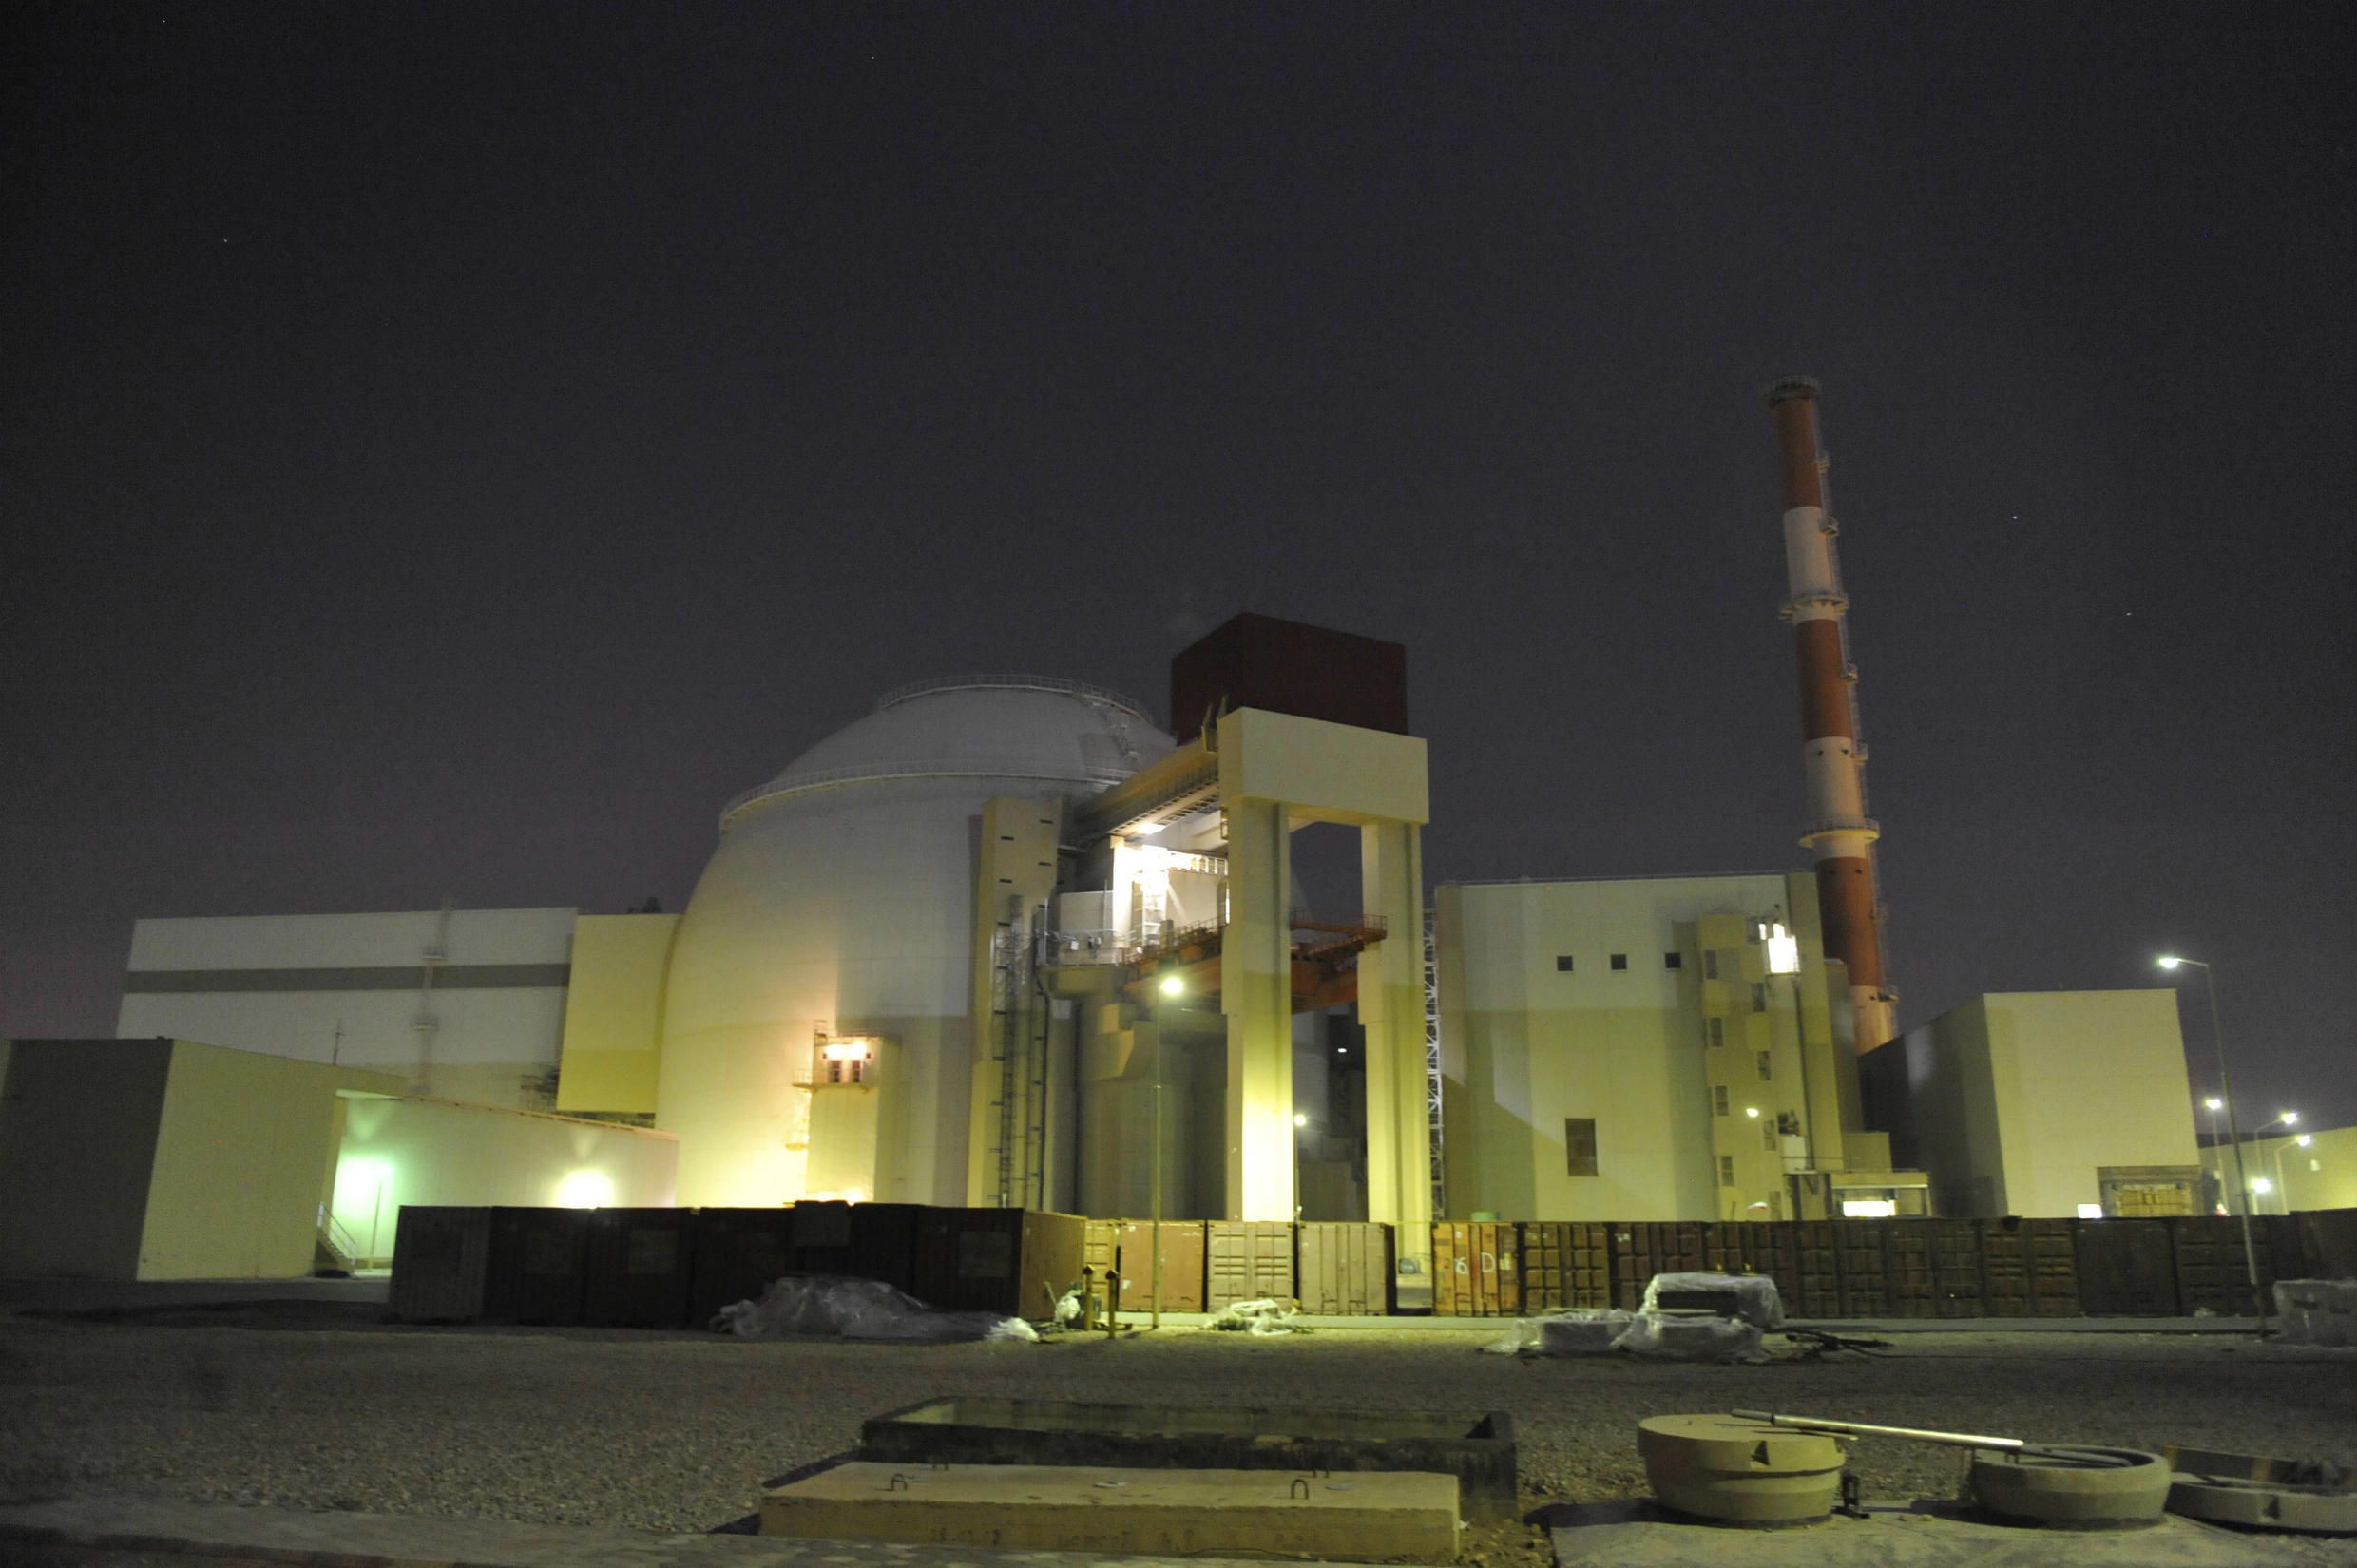 In this photo released by the semi-official Iranian Students News Agency (ISNA), the reactor building of Iran's Bushehr Nuclear Power Plant is seen, just outside the port city of Bushehr 1245 kilometers south of the capital Tehran.